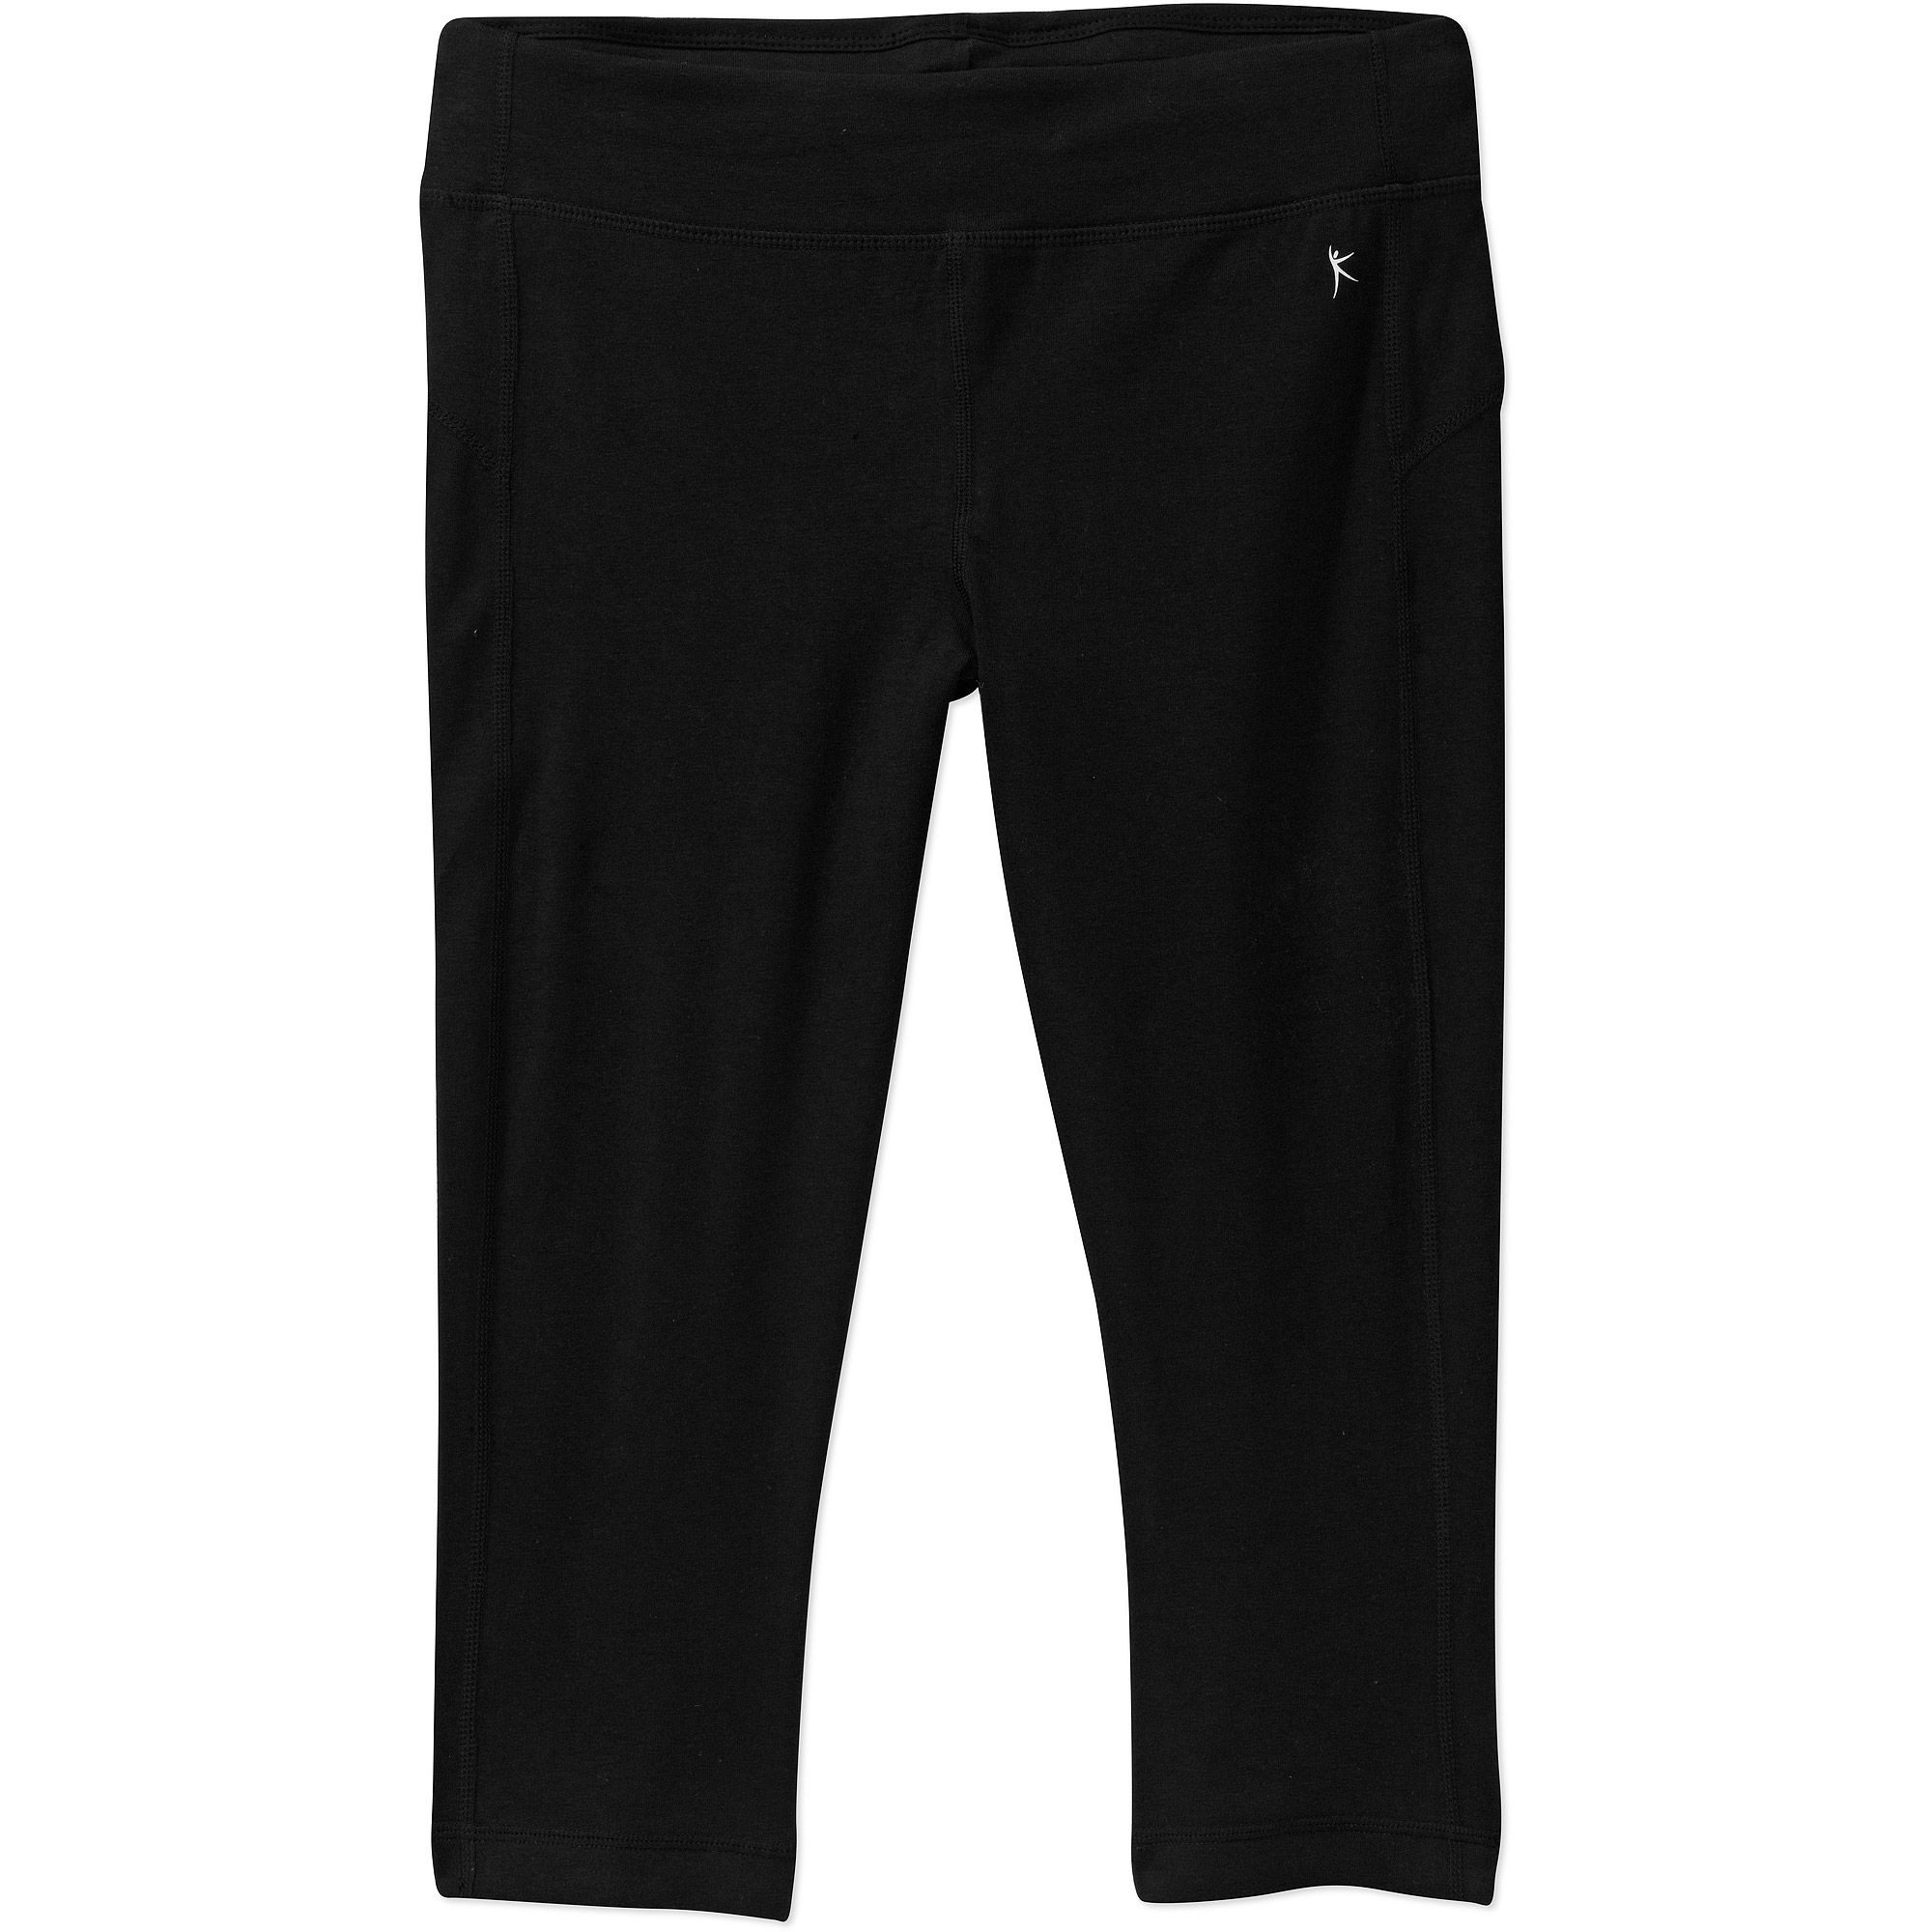 Danskin Now Women's Knit Capri Tights With Wicking